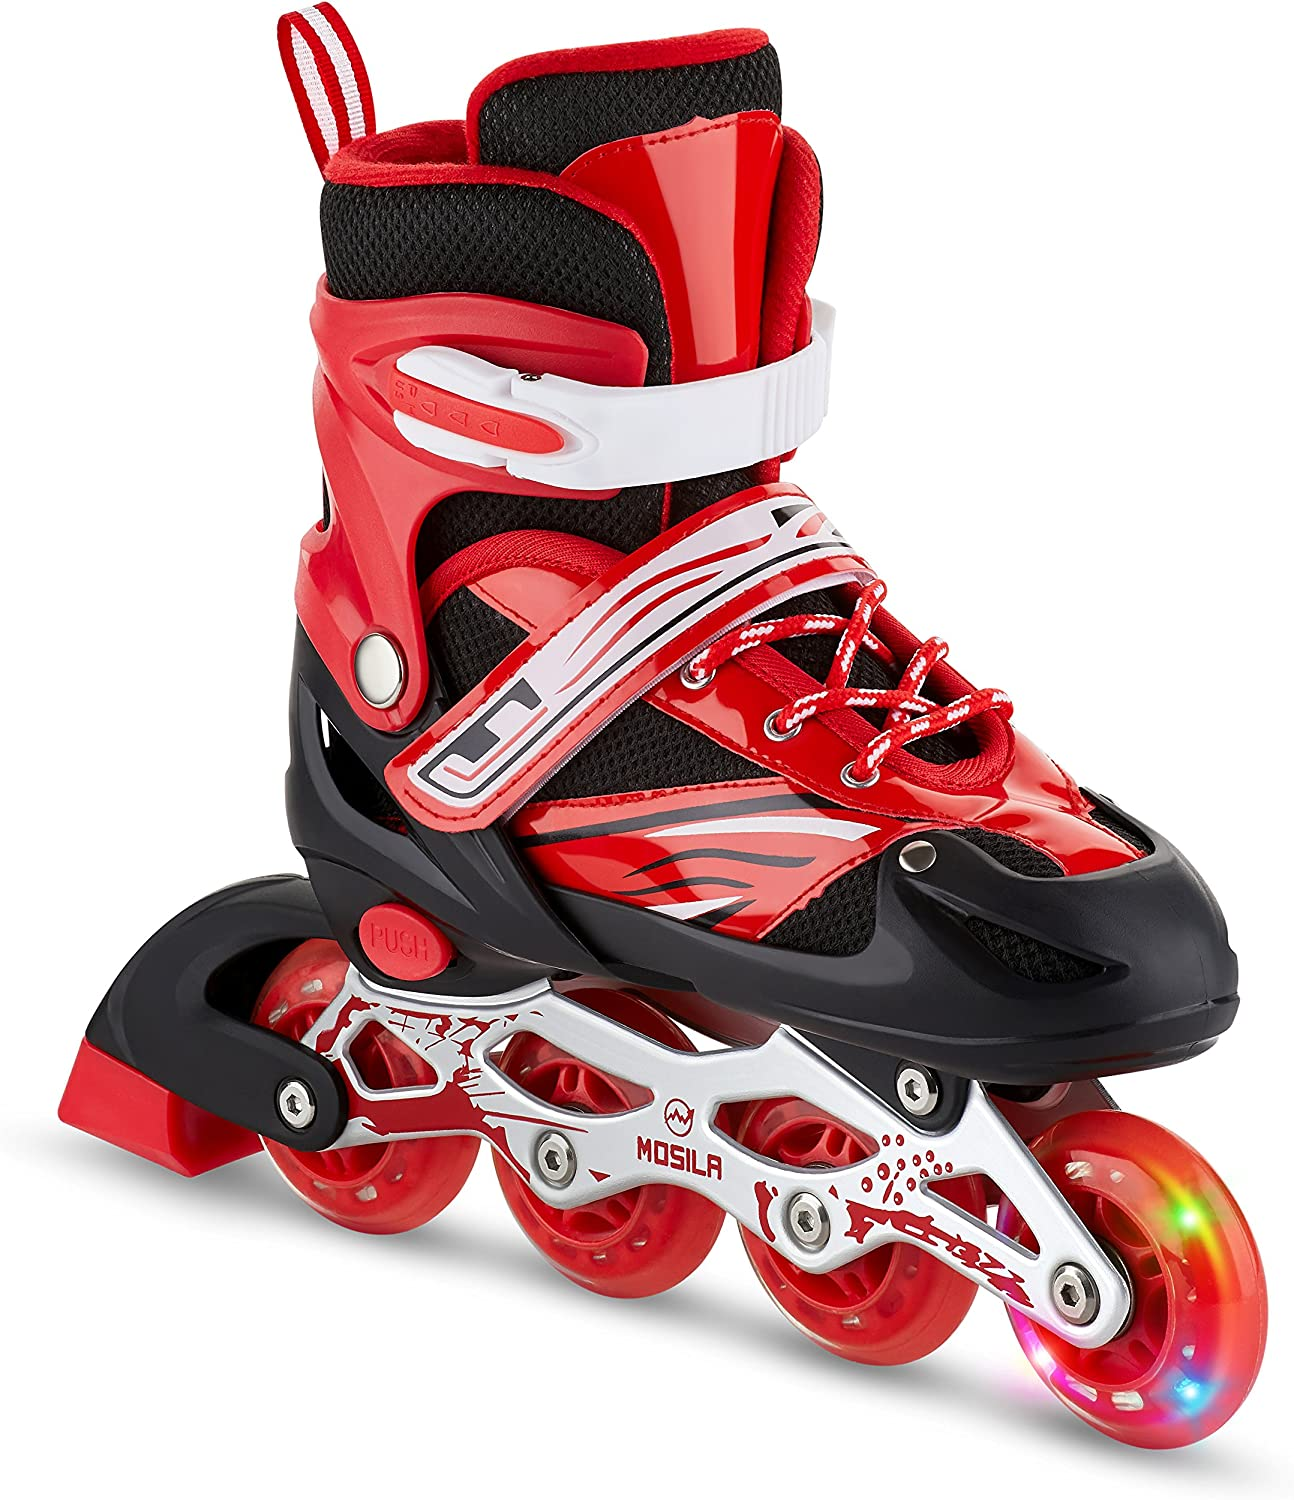 MOSILA Inline Skates Children Roller Skates for Girls and Boys Easily Adjustable,Fits US Kids Size 3-5,6-8 Expands As Your Child Grows-Light Up Front Wheel and Low Friction Wheels